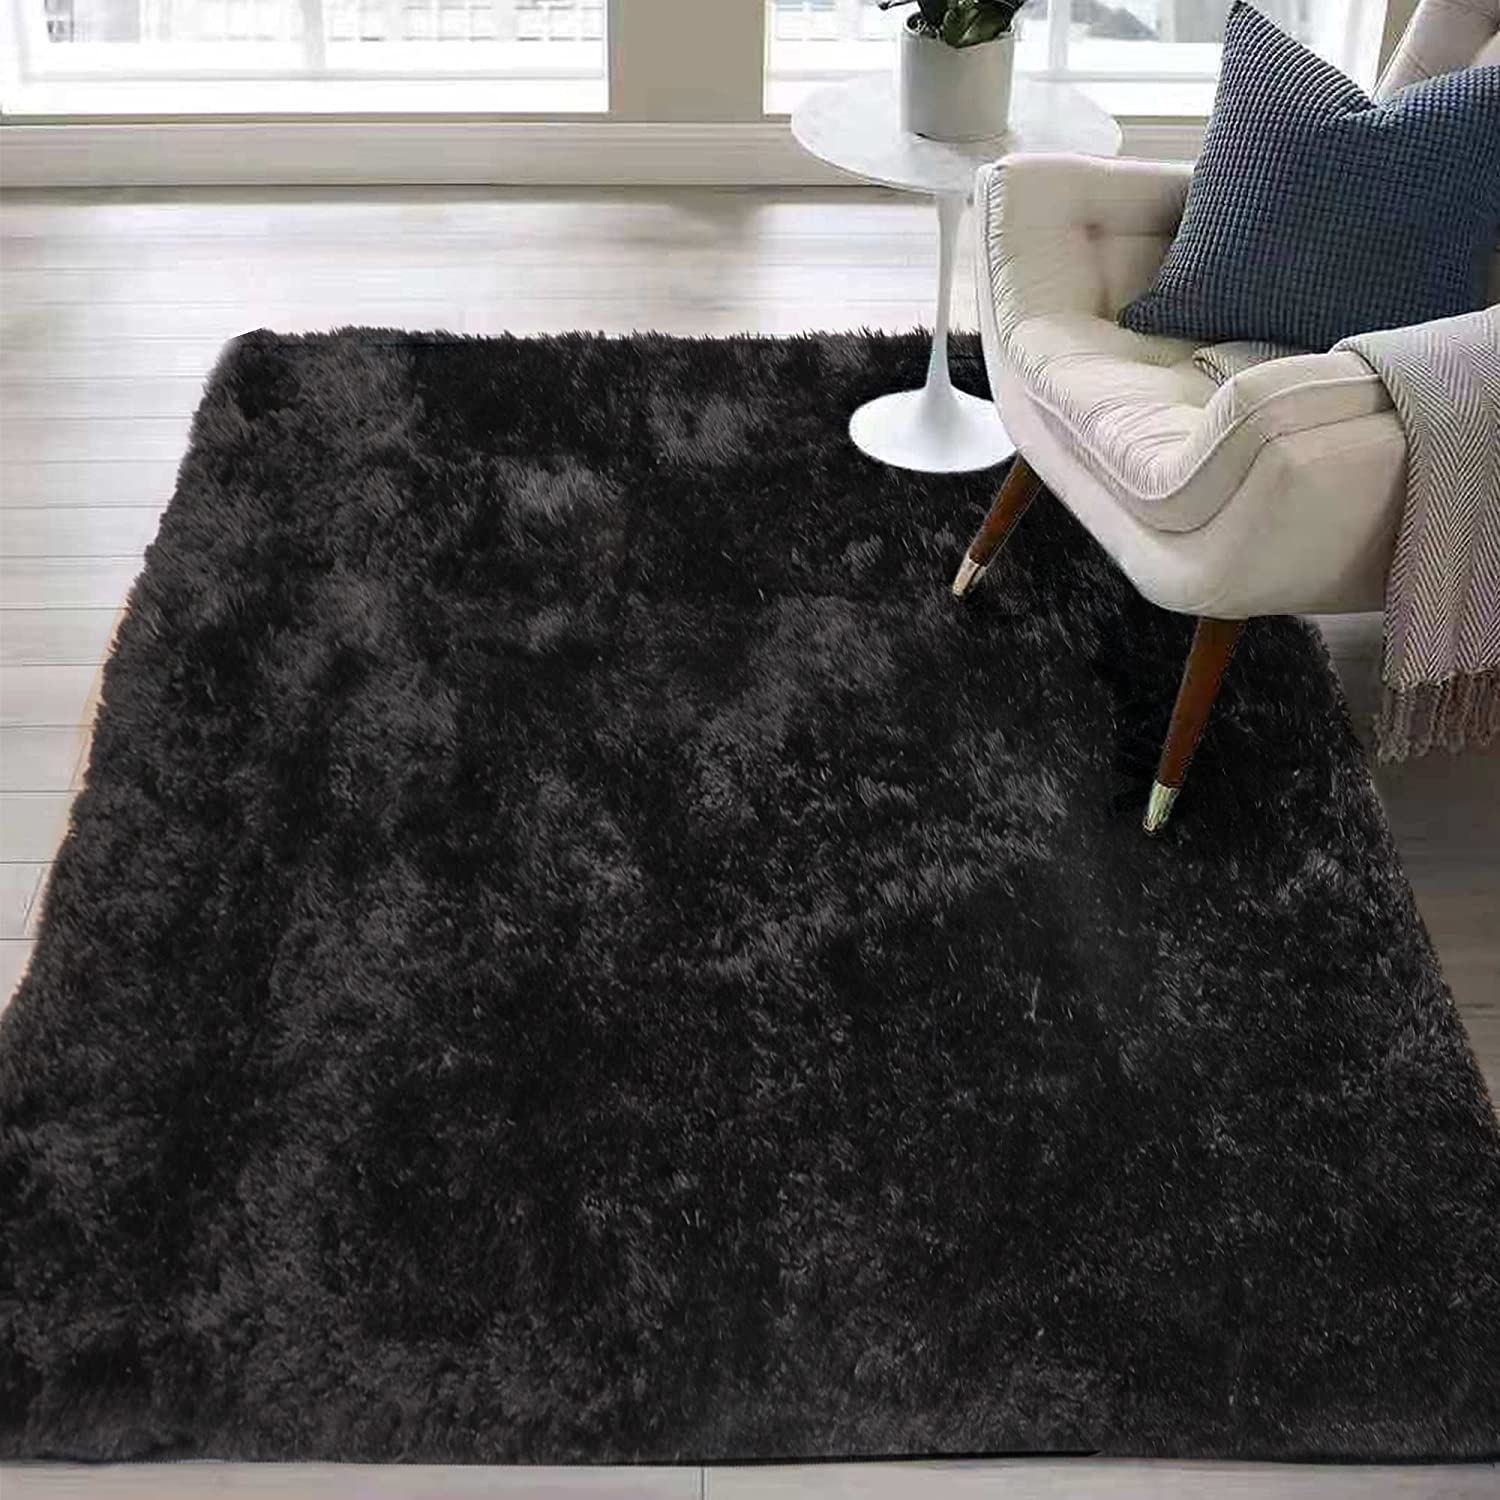 Little Joke Fluffy Area Rug 4' x 6', Soft Fuzzy Colorful Shaggy Rugs for Living Room, Girls Bedroom, Nursery, Baby Rooms, Home Decor Carpet 4x6 Feet, Black